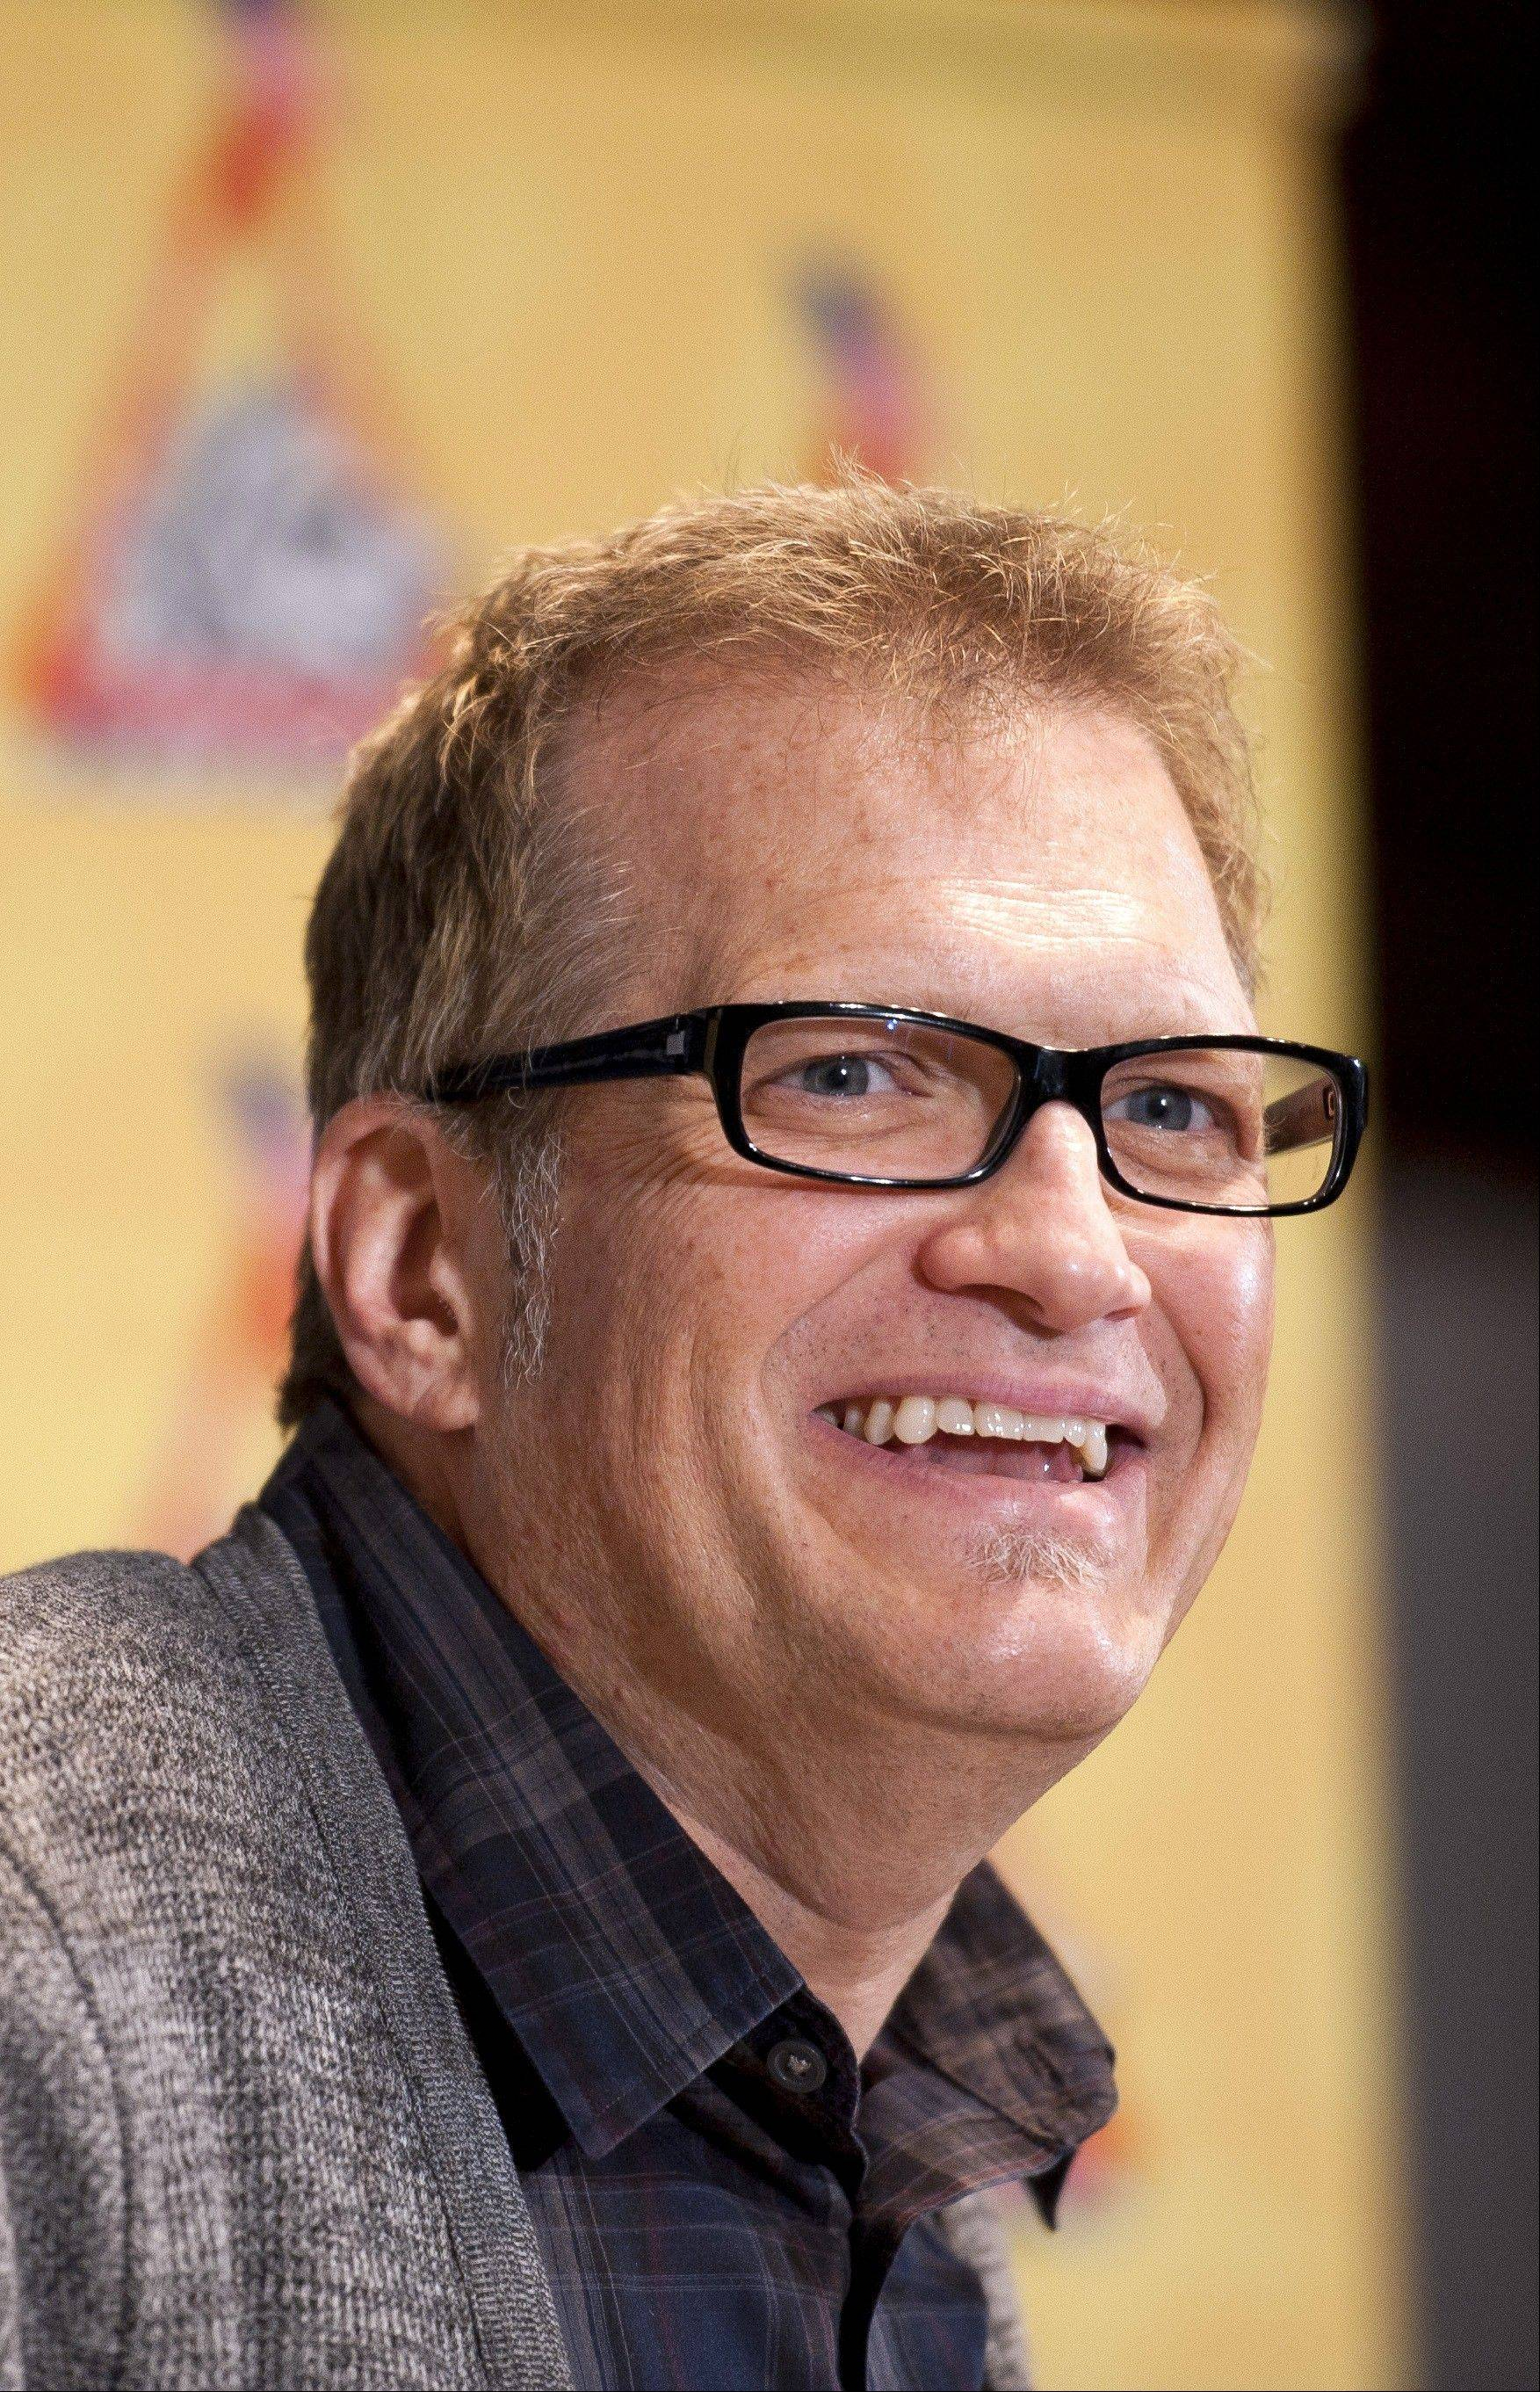 Comedian Drew Carey performs a special engagement at Zanies in Rosemont this weekend.